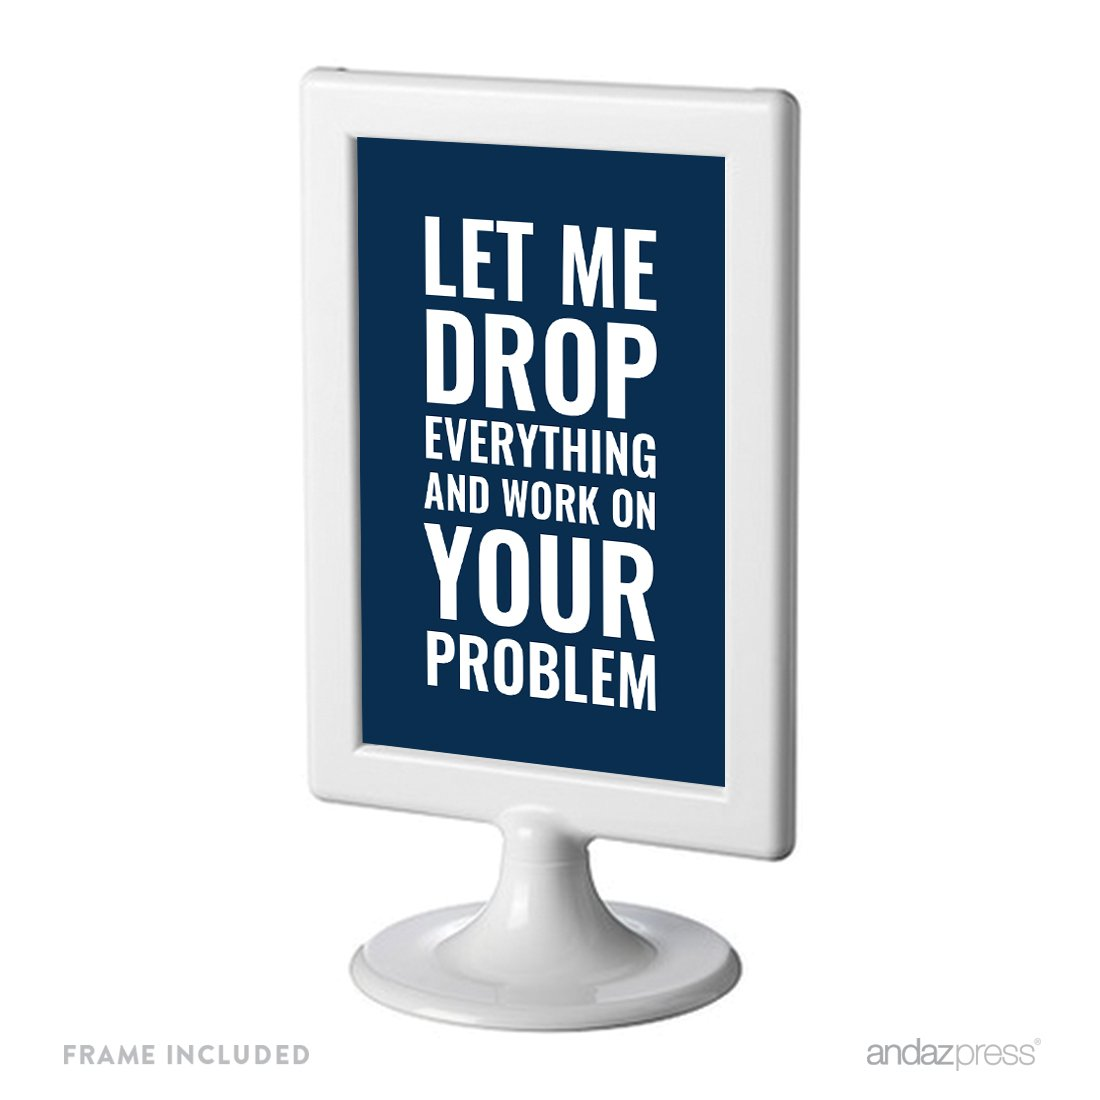 Andaz Press Office Framed Desk Art, Let Me Drop Everything And Work On Your Problem, 4x6-inch Inspirational Funny Quotes Gift Print, Birthday Christmas Gift Ideas for Boss, 1-Pack, Includes Frame